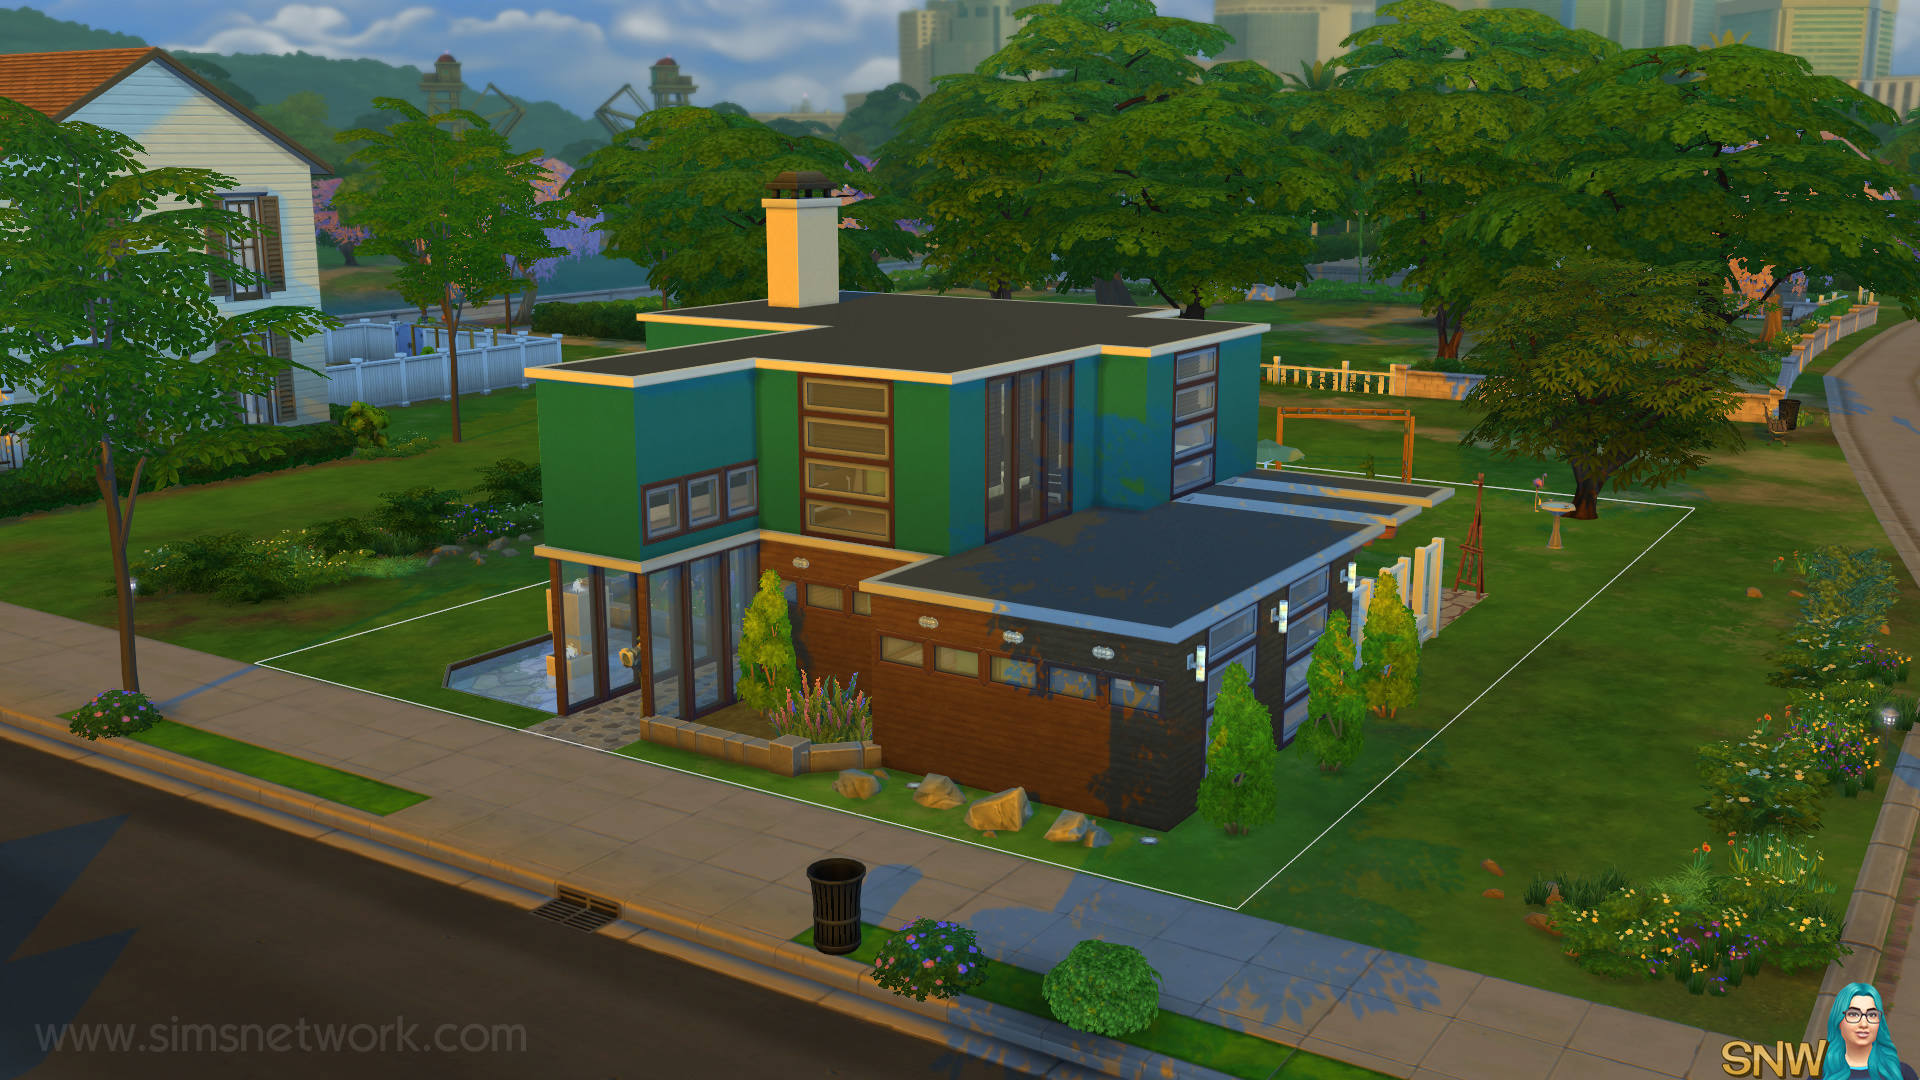 Mid-Century Modern House in The Sims 4 | SNW | SimsNetwork com